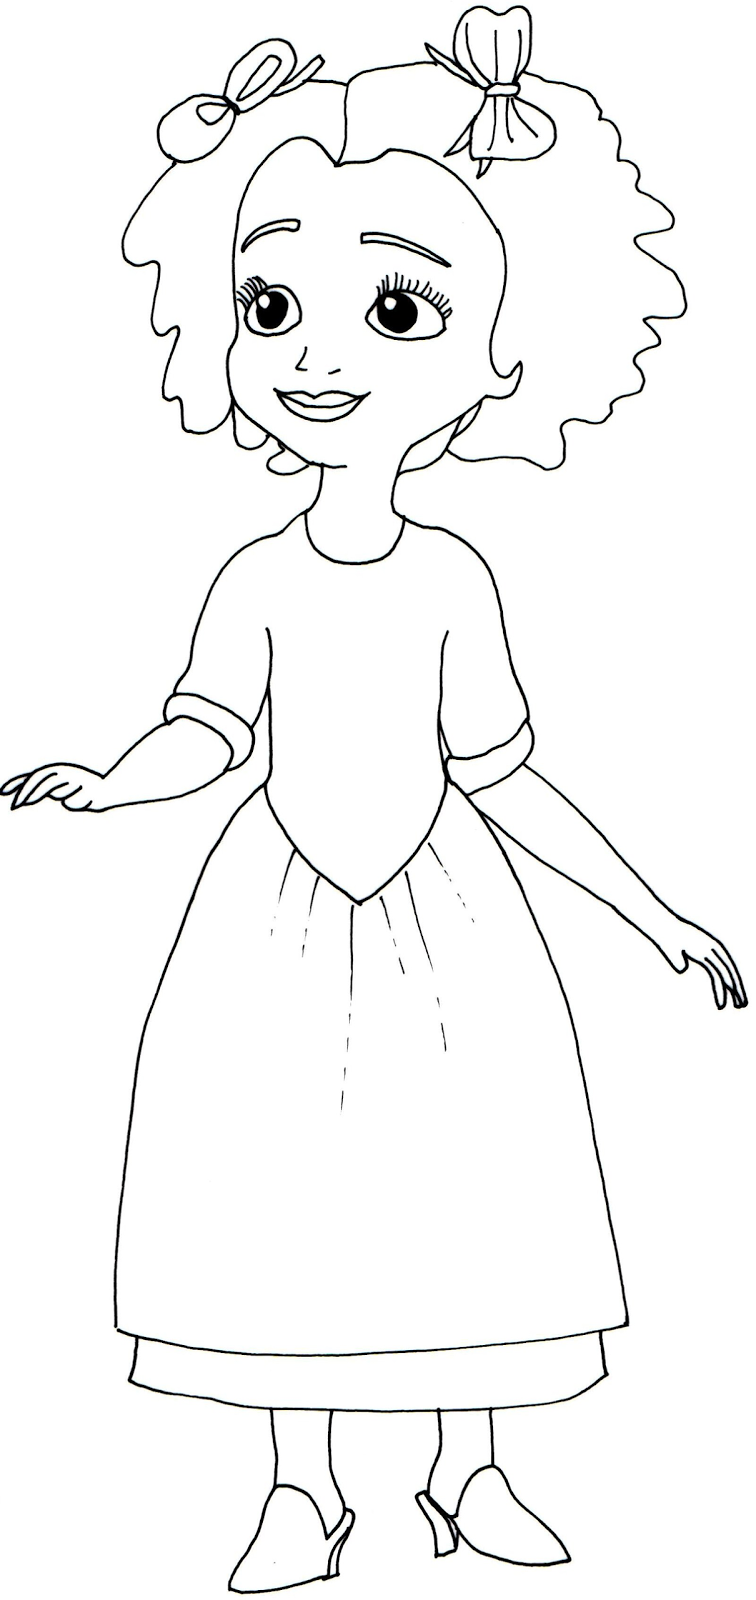 Sofia The First Coloring Pages Ruby Disney Coloring Pages Printables Disney Coloring Pages Coloring Books